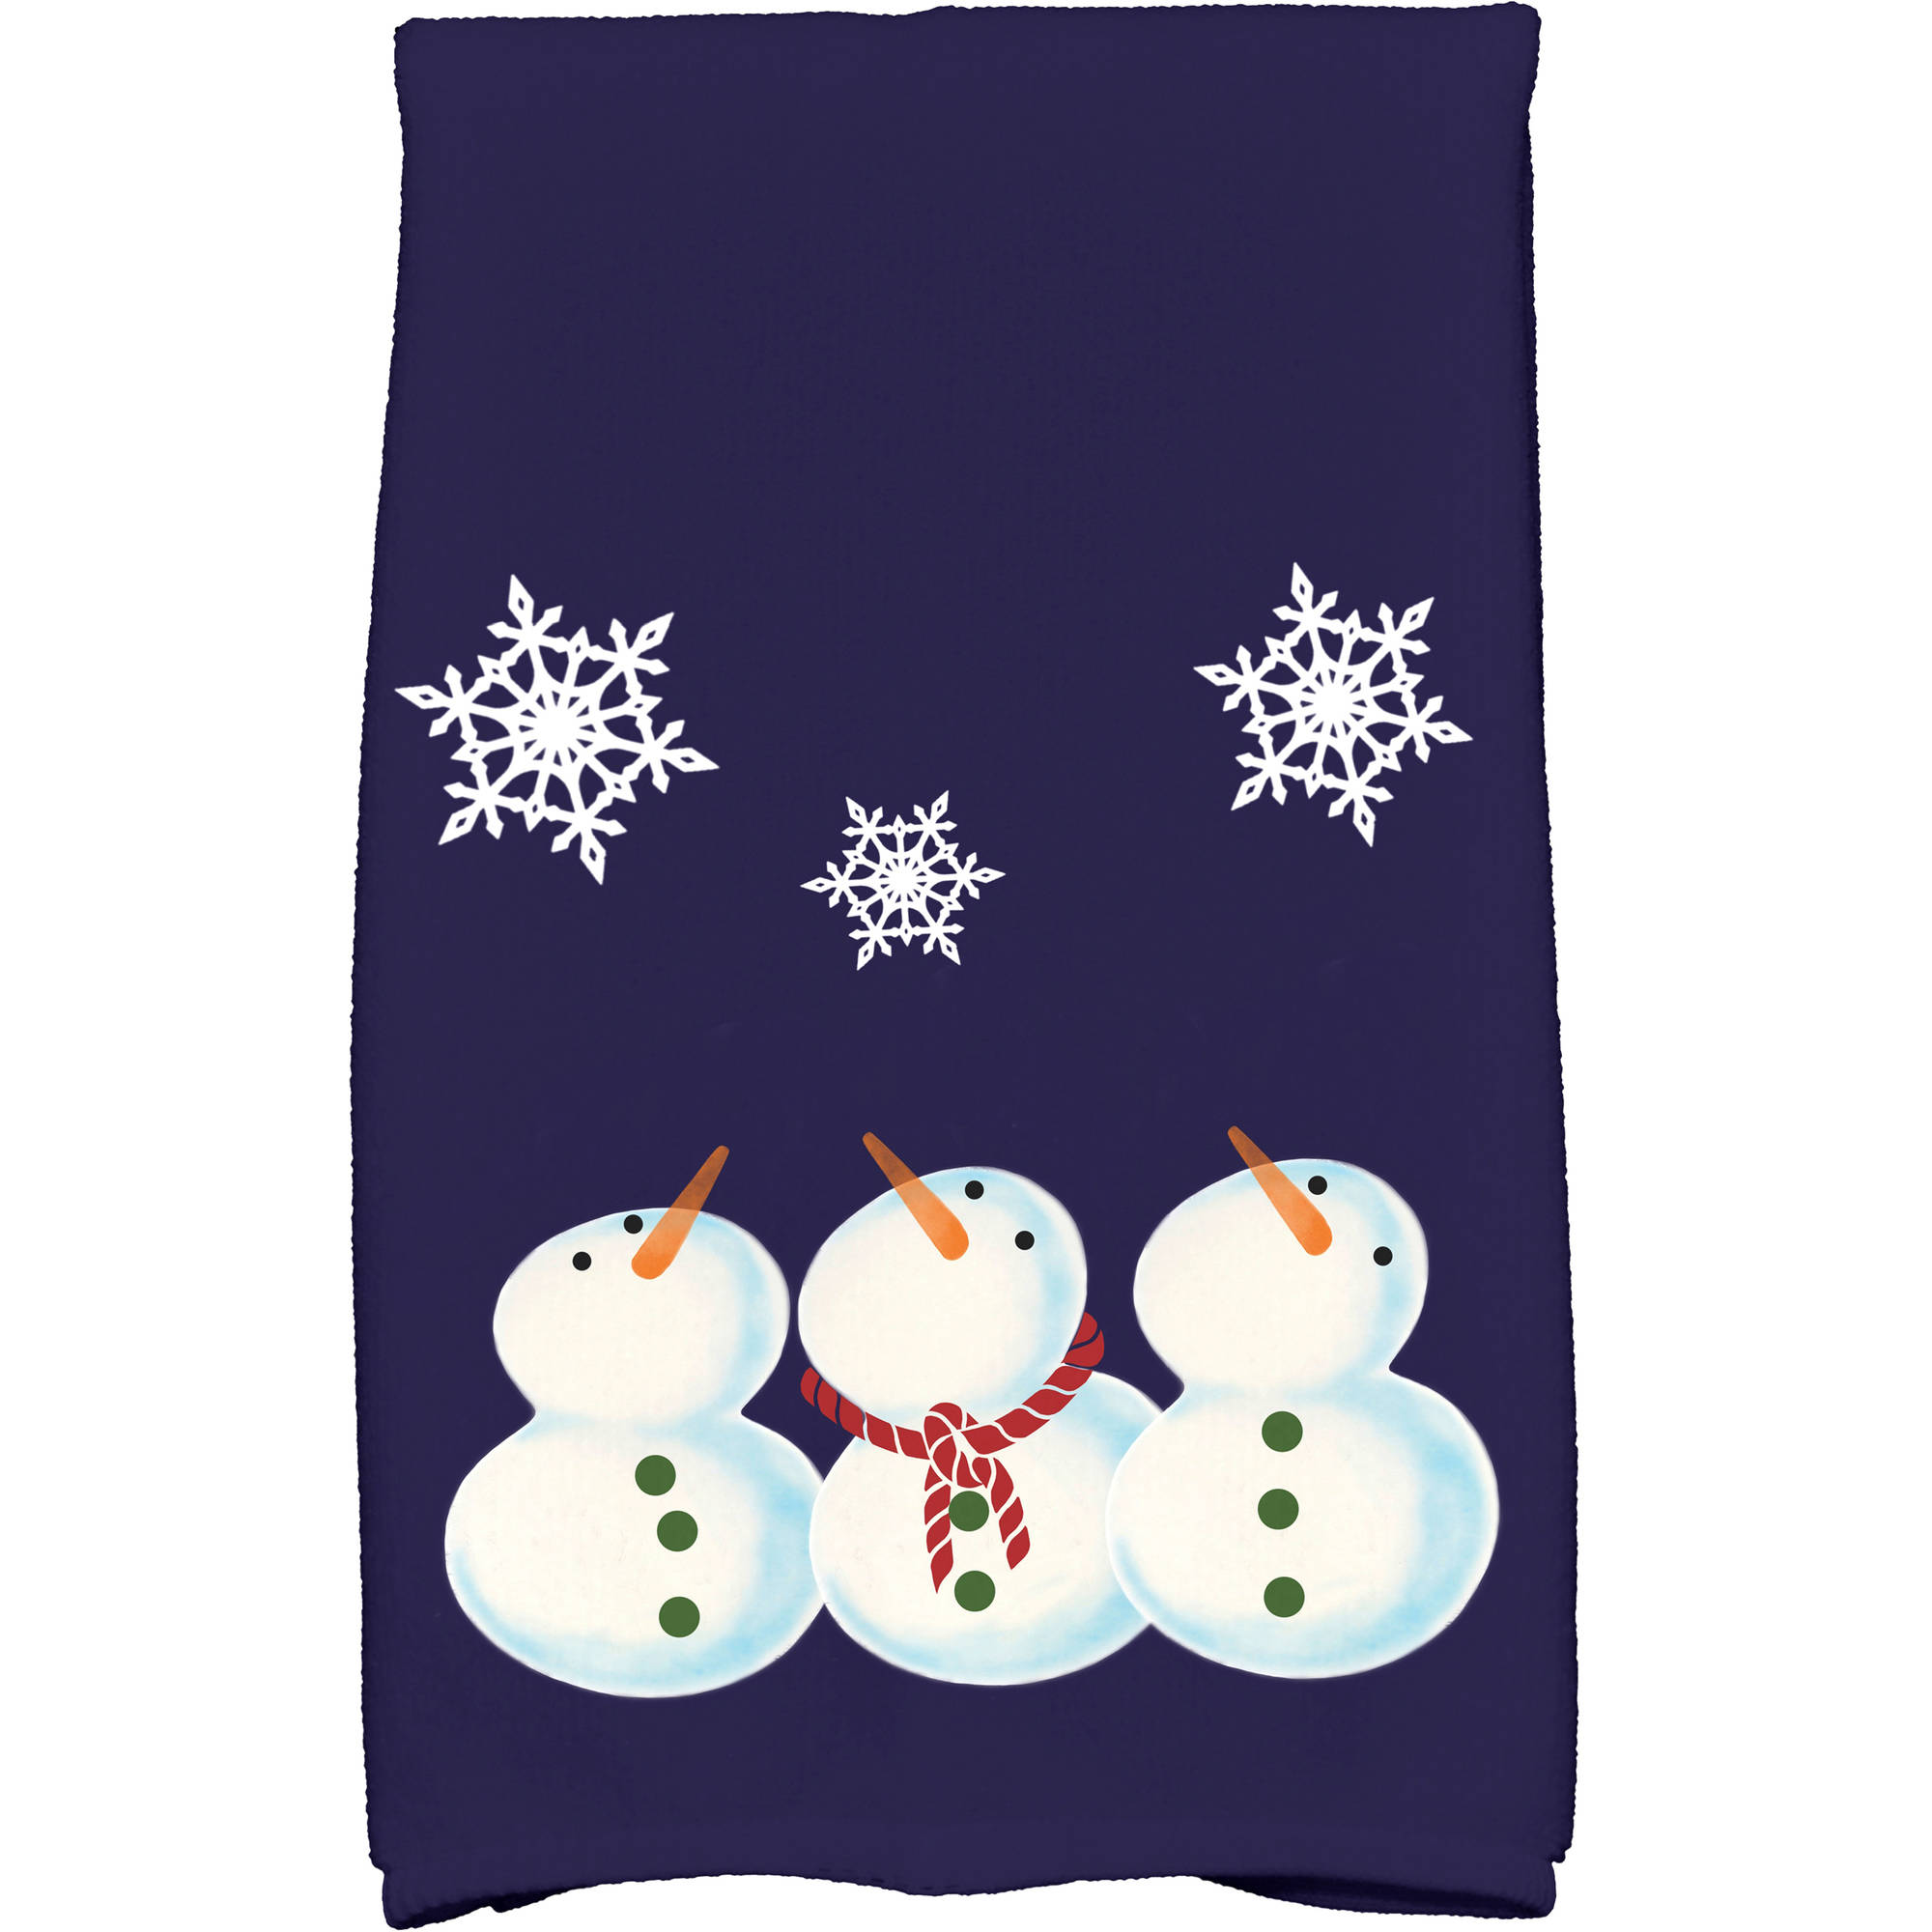 "Simply Daisy 16"" x 25"" 3 Wise Snowmen Holiday Geometric Print Kitchen Towel"